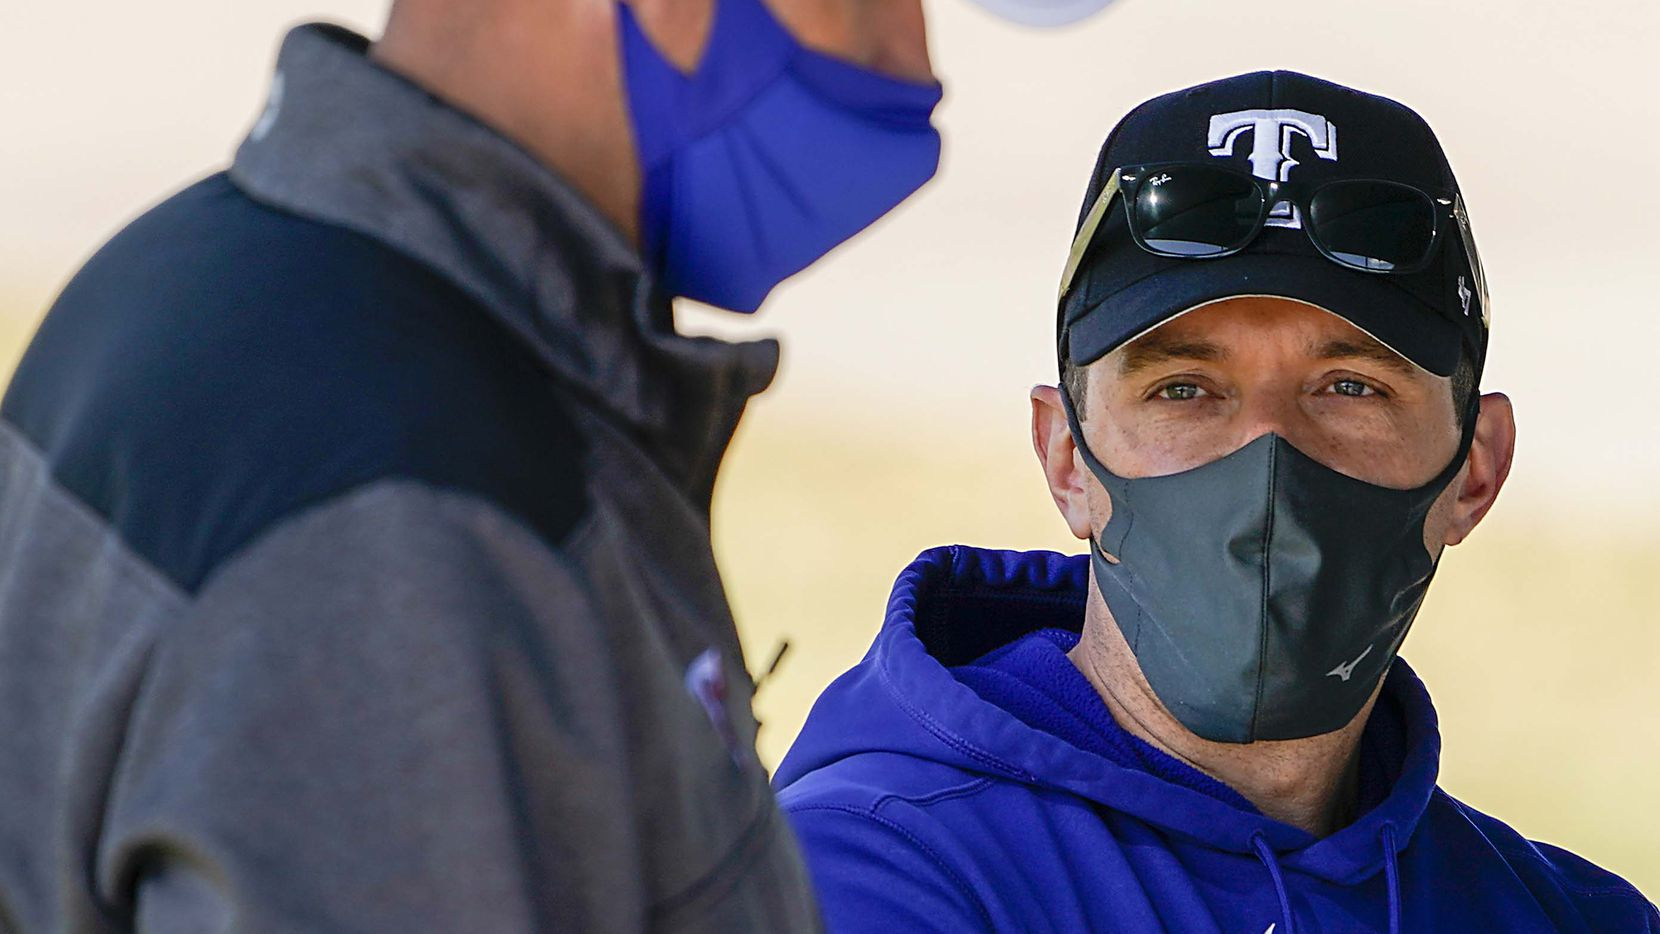 Texas Rangers president, baseball operations, Jon Daniels (right) and executive vice president & general manager Chris Young watch during a spring training workout at the team's training facility on Saturday, March 6, 2021, in Surprise, Ariz.